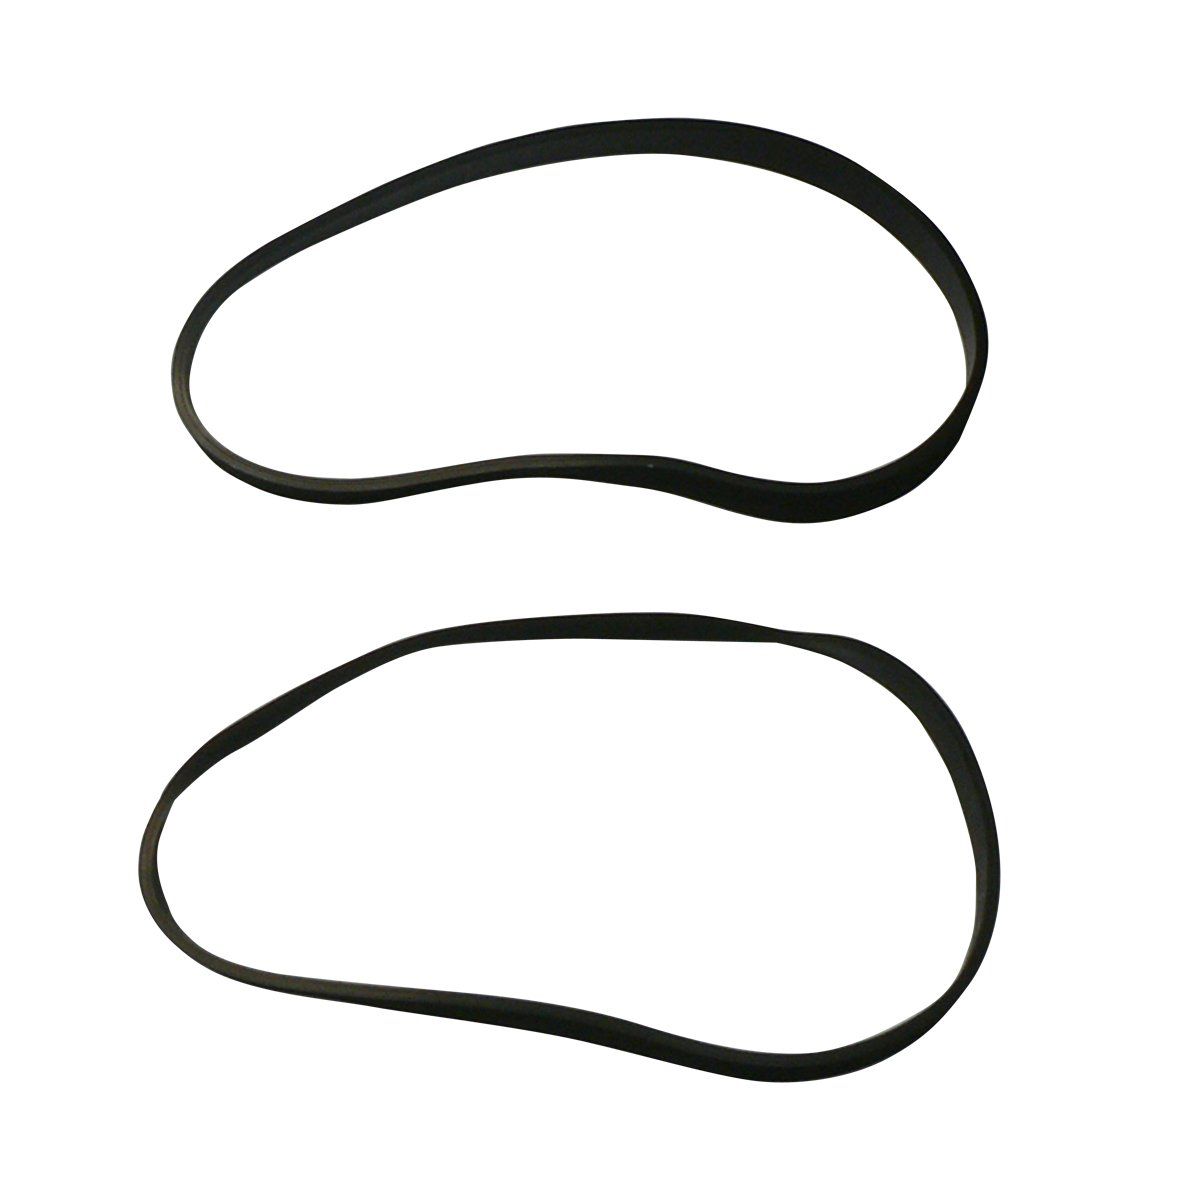 Panasonic Replacement Vacuum Belts, 2-Pack